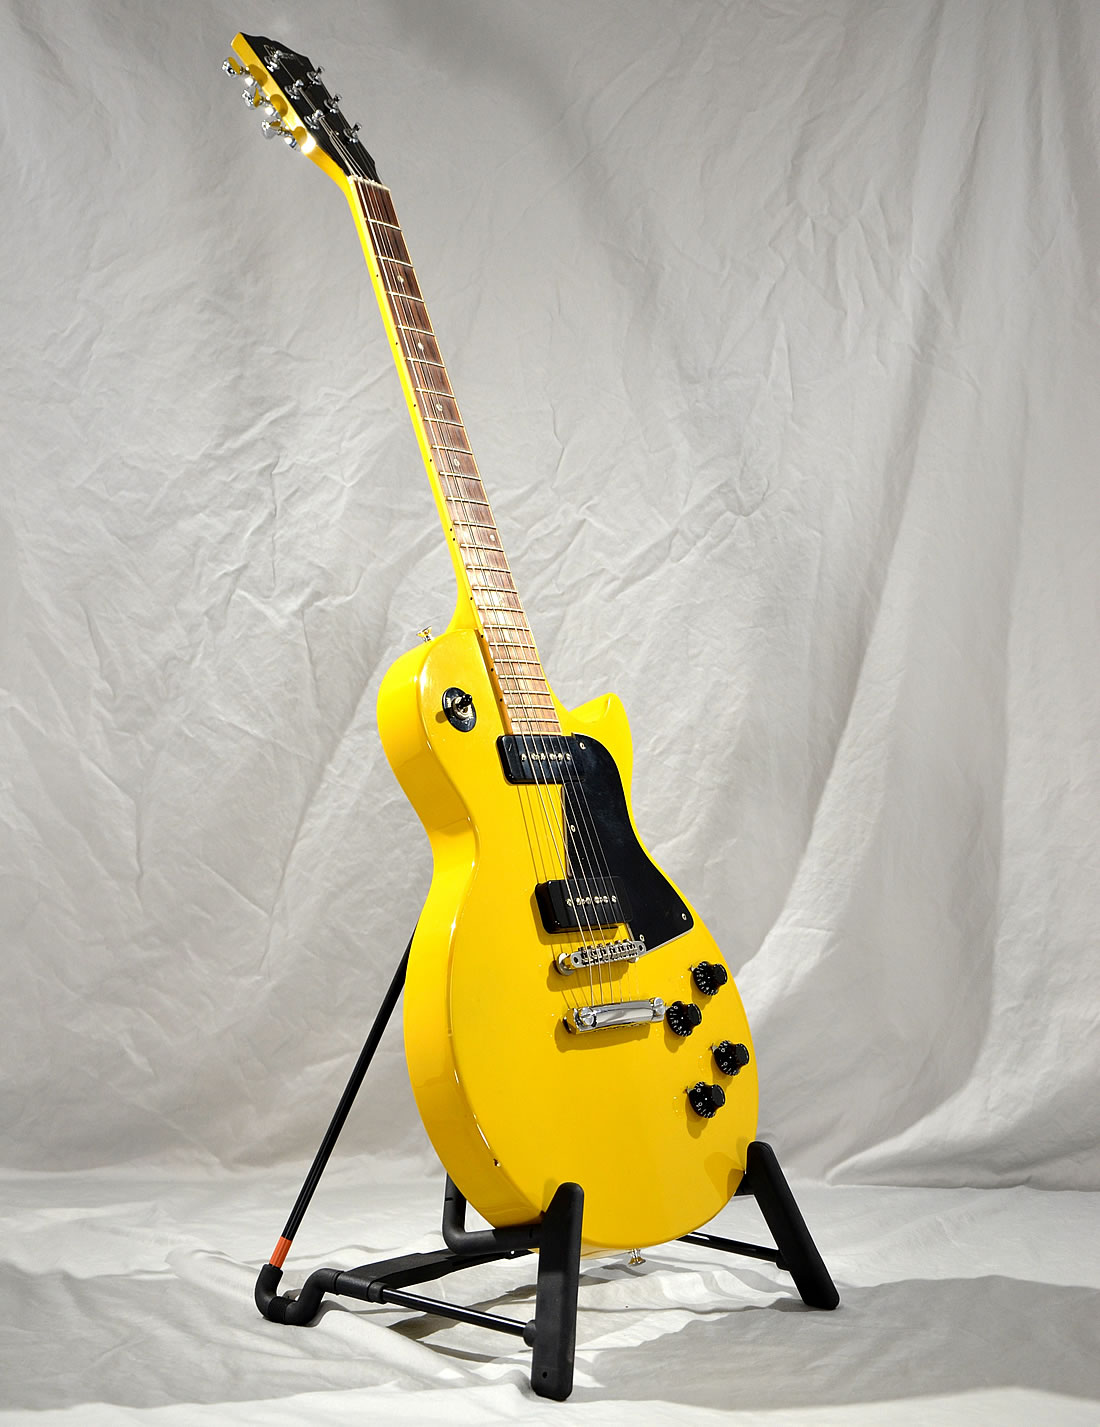 1991 Gibson Les Paul Special Tv Show Yellow Guitar Reissue